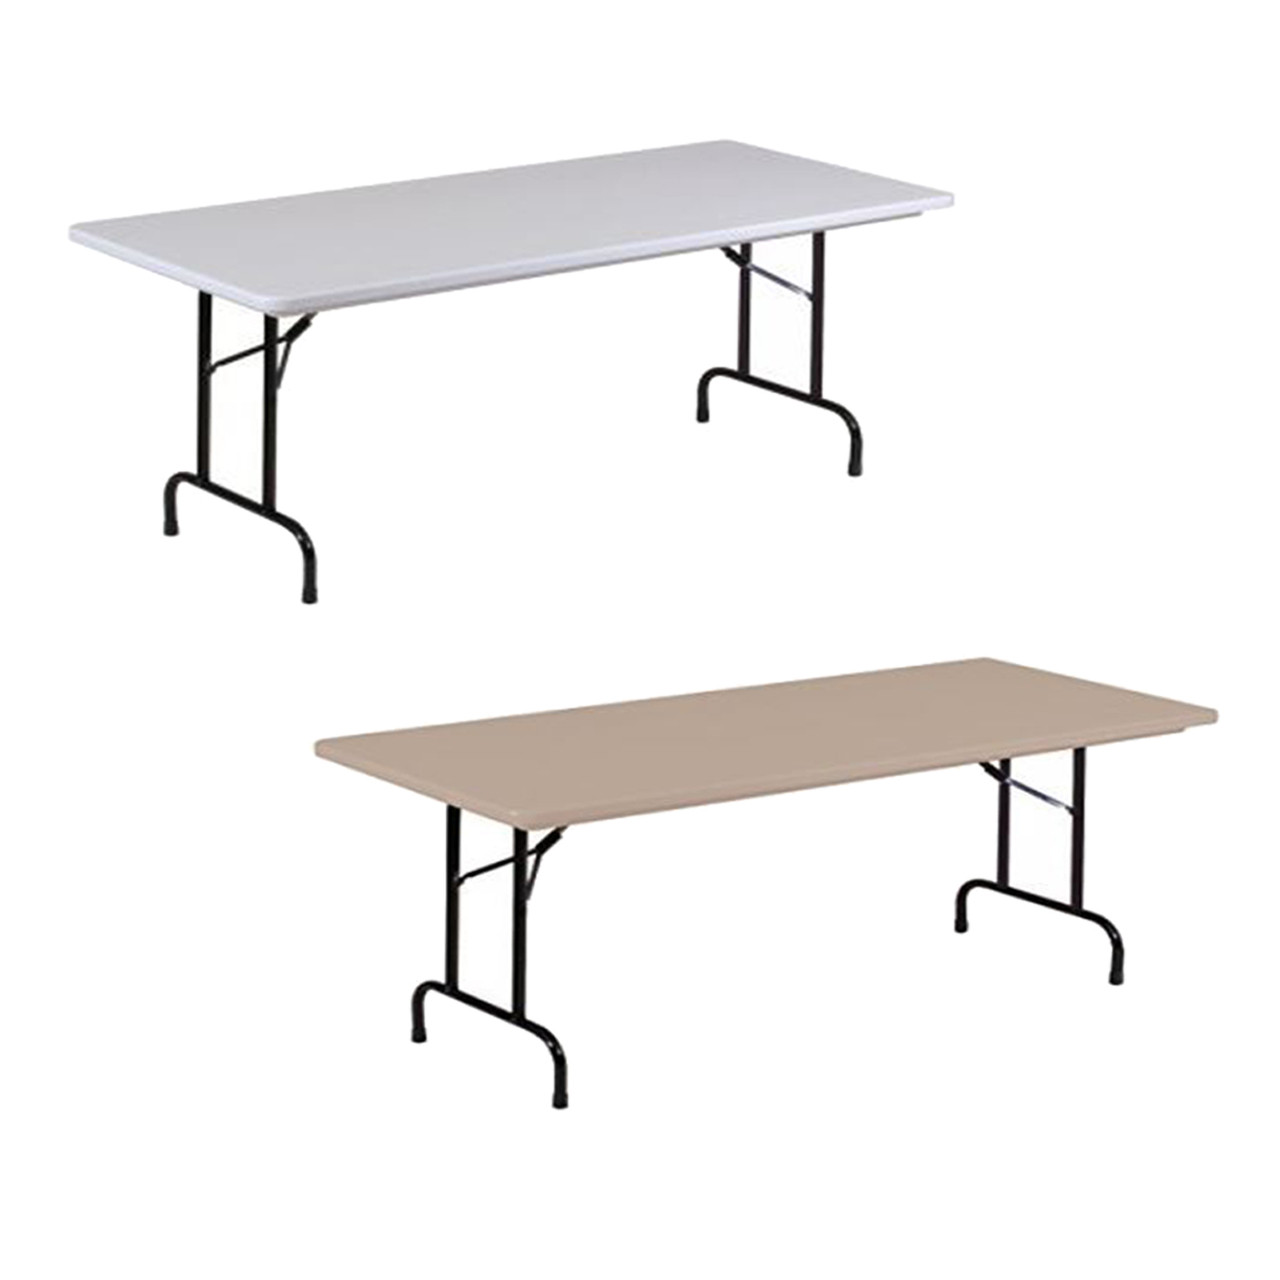 R Series By Correll 30 X 96 8ft Usa Made Plastic Folding Table Model R3096 Foldingchairsandtables Com